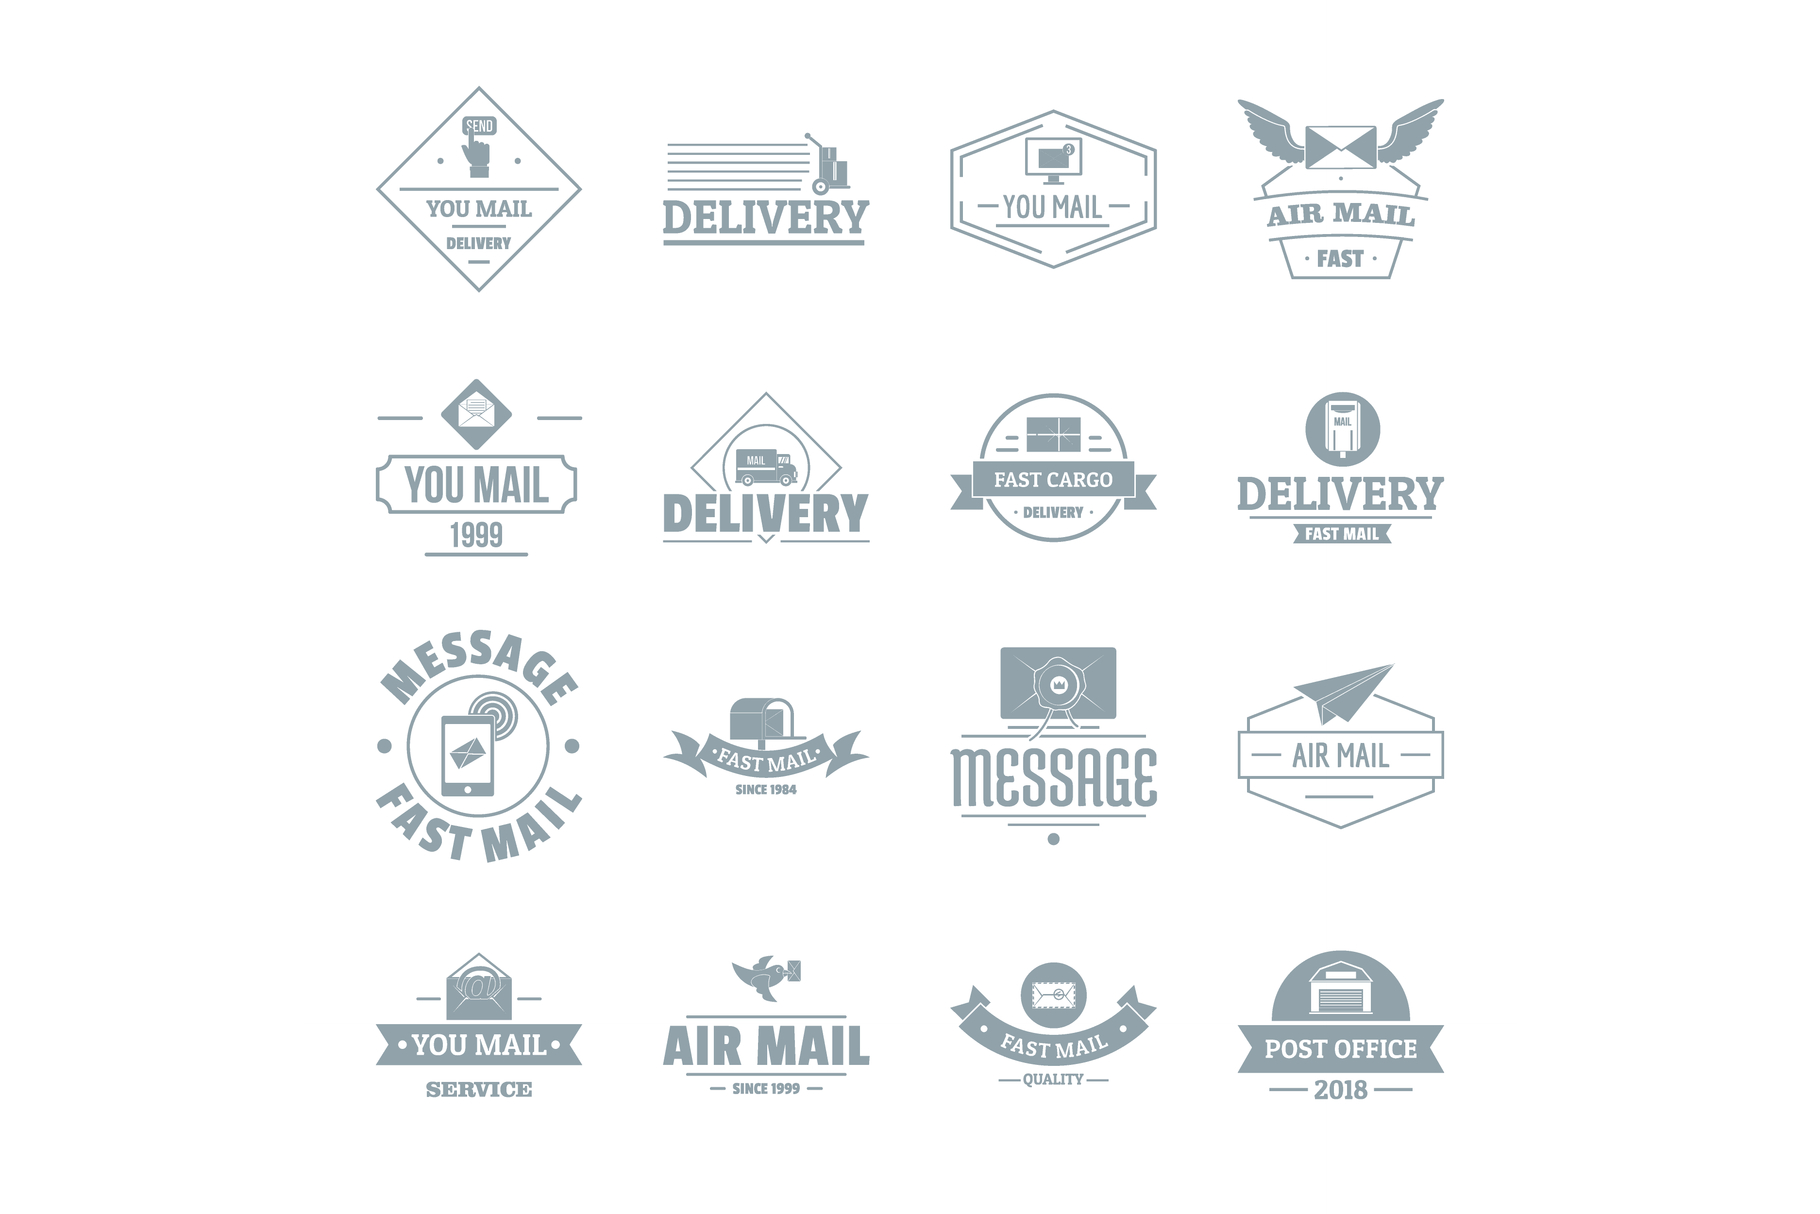 Delivery service logo icons set, simple style example image 1